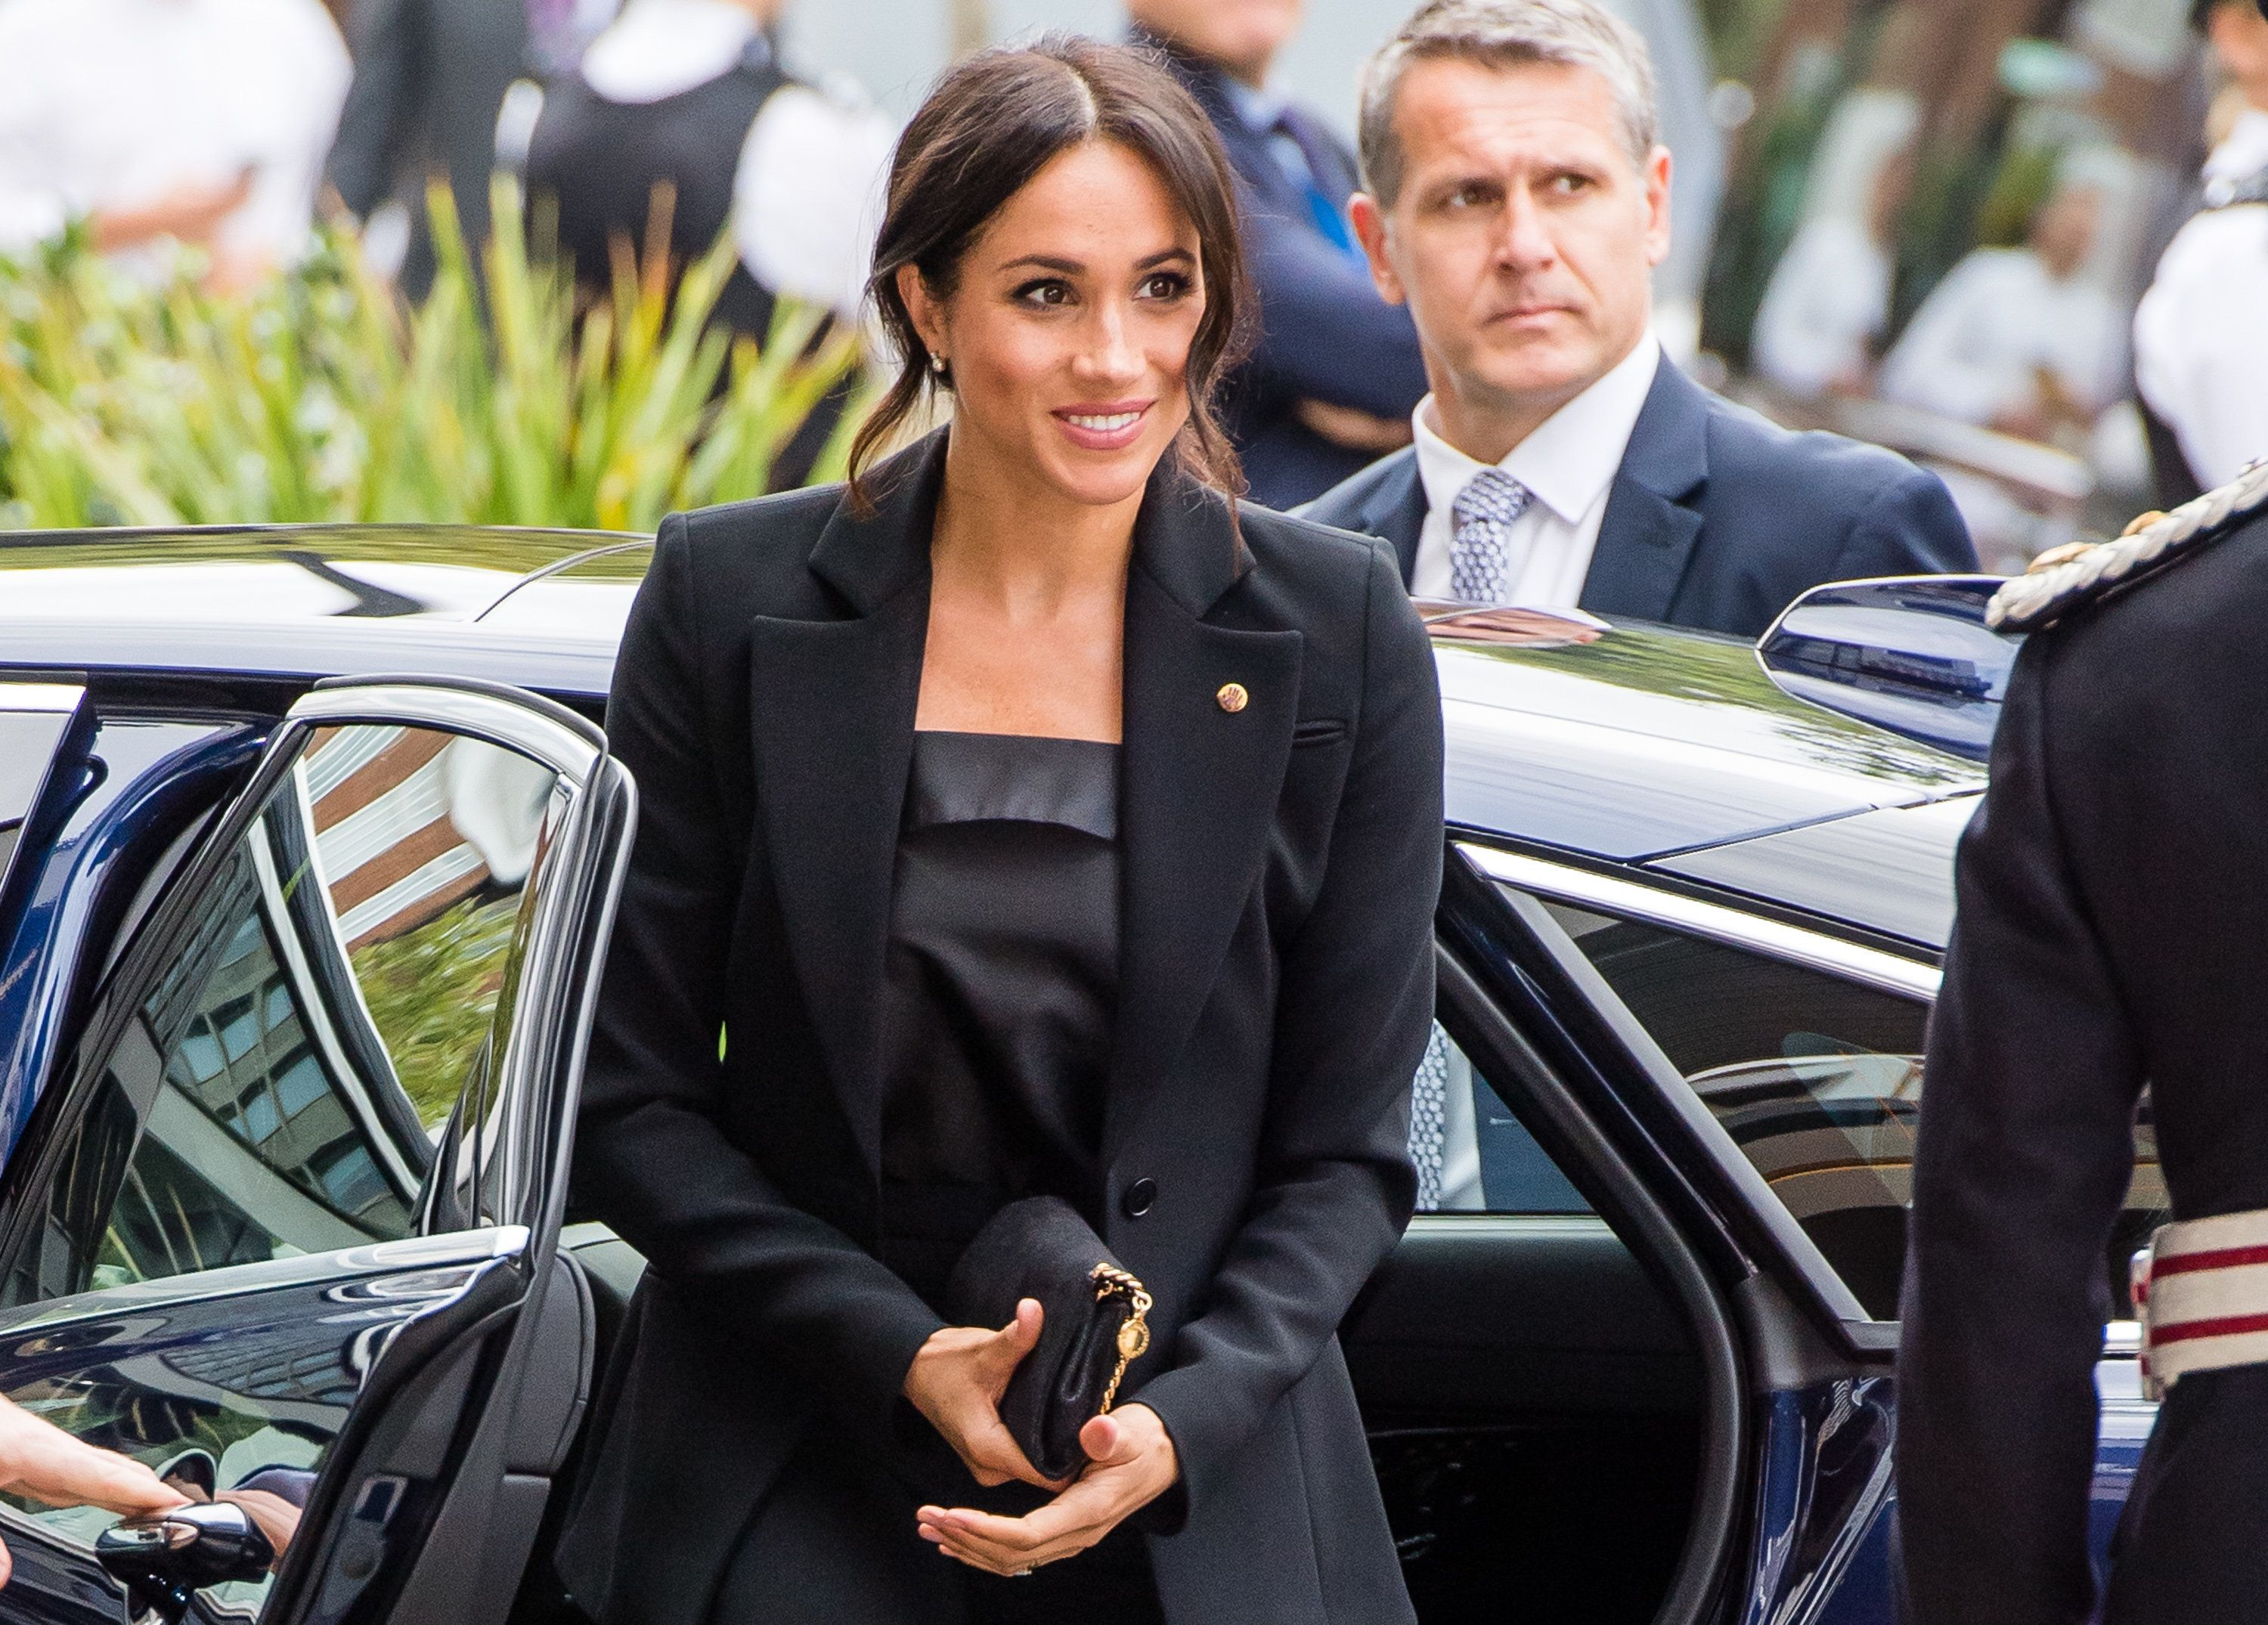 LONDON, ENGLAND - SEPTEMBER 04:  Meghan, Duchess of Sussex attends the WellChild awards at Royal Lancaster Hotel on September 4, 2018 in London, England.  The Duke of Susssex has been patron of WellChild since 2007.  (Photo by Samir Hussein/Samir Hussein/WireImage)